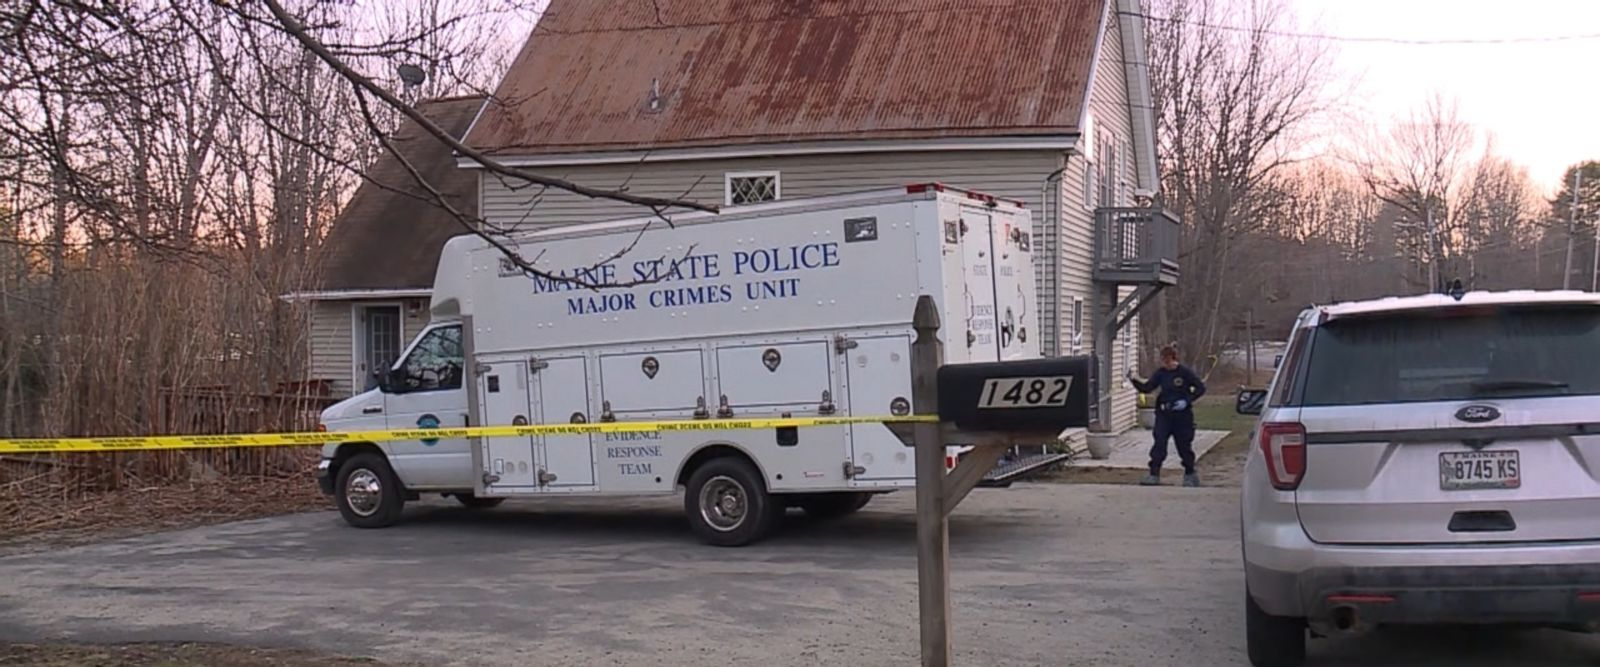 VIDEO: A Maine teenager was arrested for murder over the weekend after he and his friends allegedly stabbed and strangled his 47-year-old mother in her home, according to court documents released on Monday.